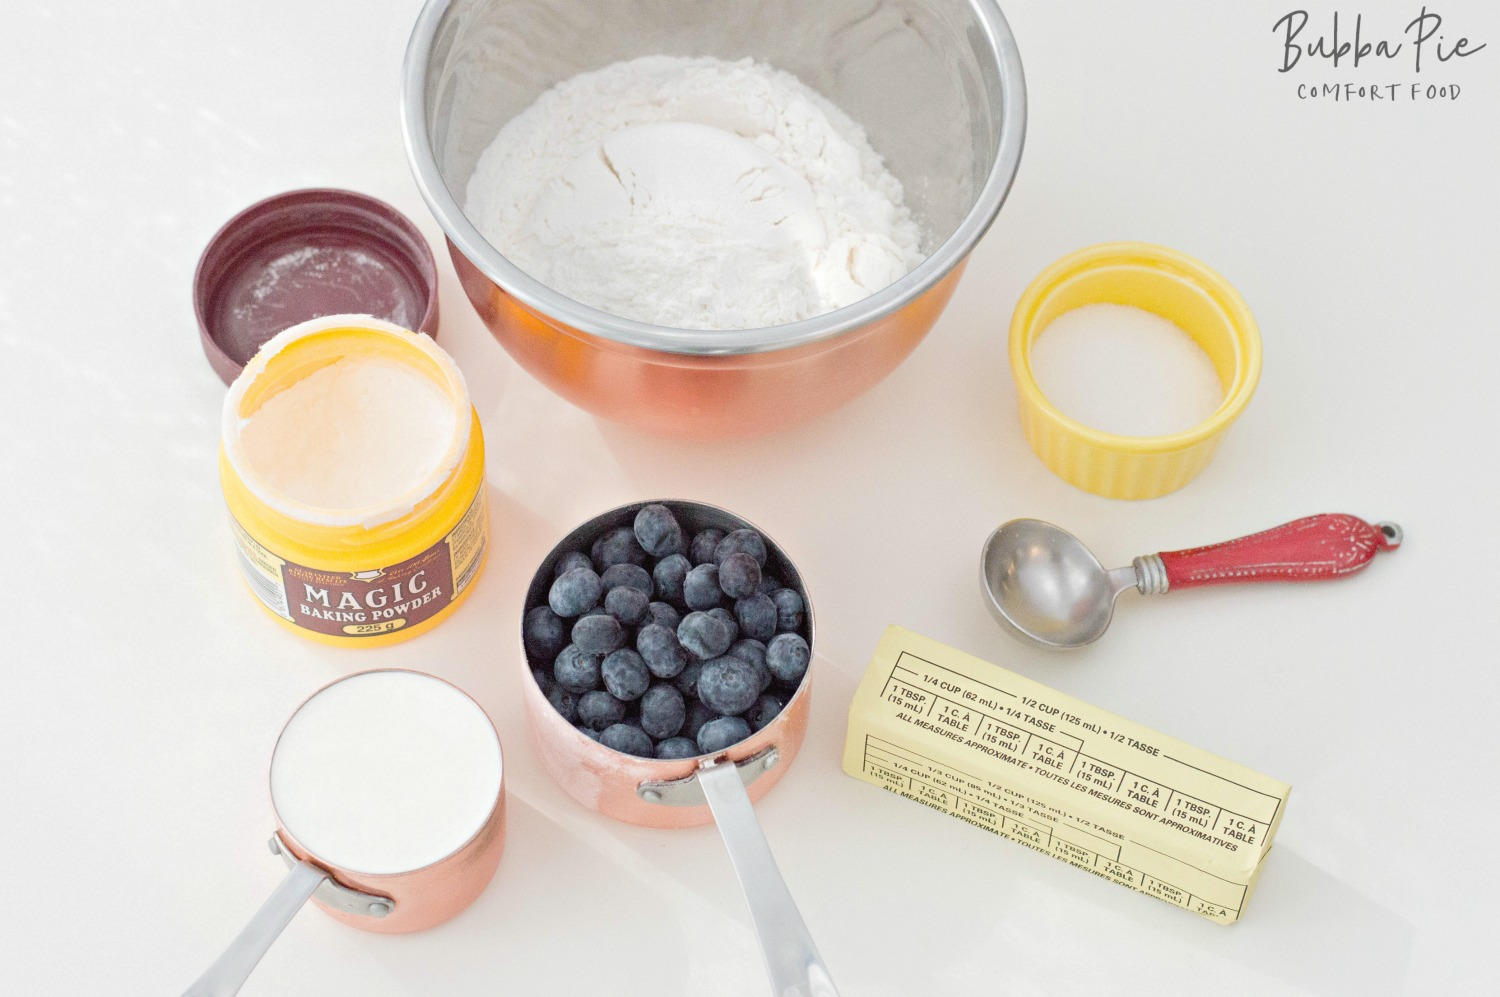 ingredients for Blueberry Scone Recipe include butter, blueberries, flour and heavy cream